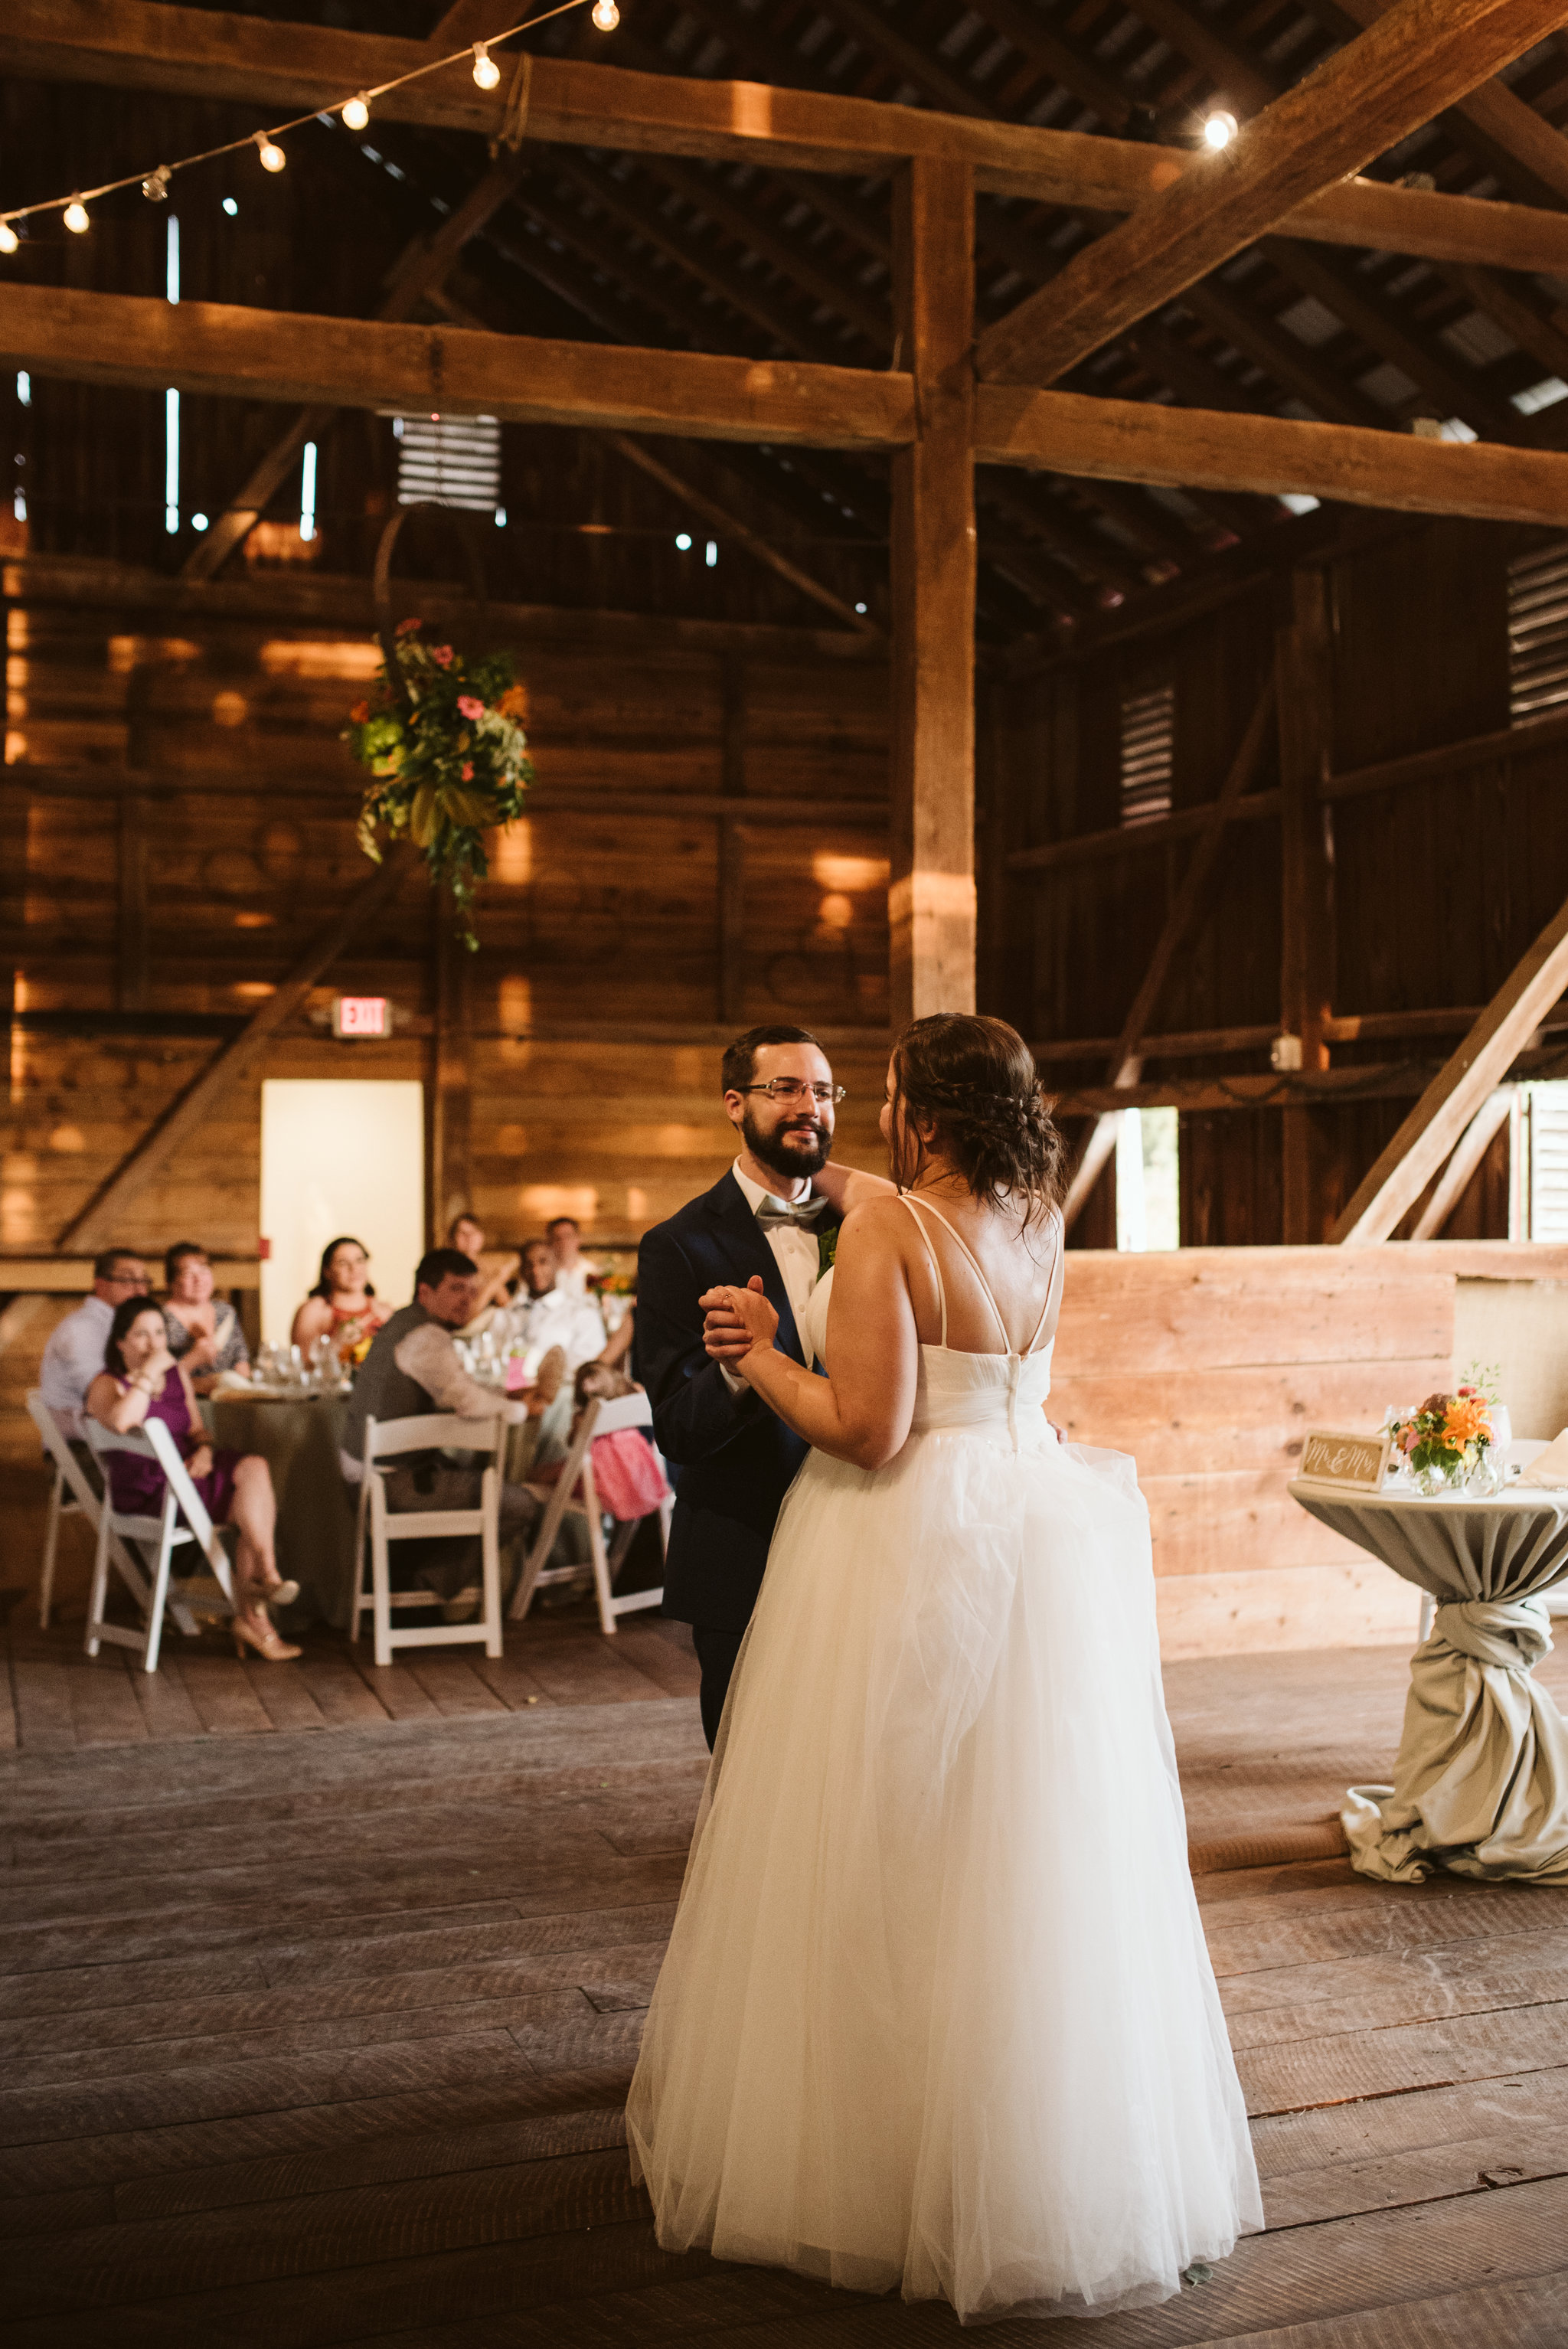 Rocklands Farm, Maryland, Intimate Wedding, Baltimore Wedding Photographer, Sungold Flower Co, Rustic, Romantic, Barn Wedding, Bride and Groom First Dance, Tulle Wedding Dress